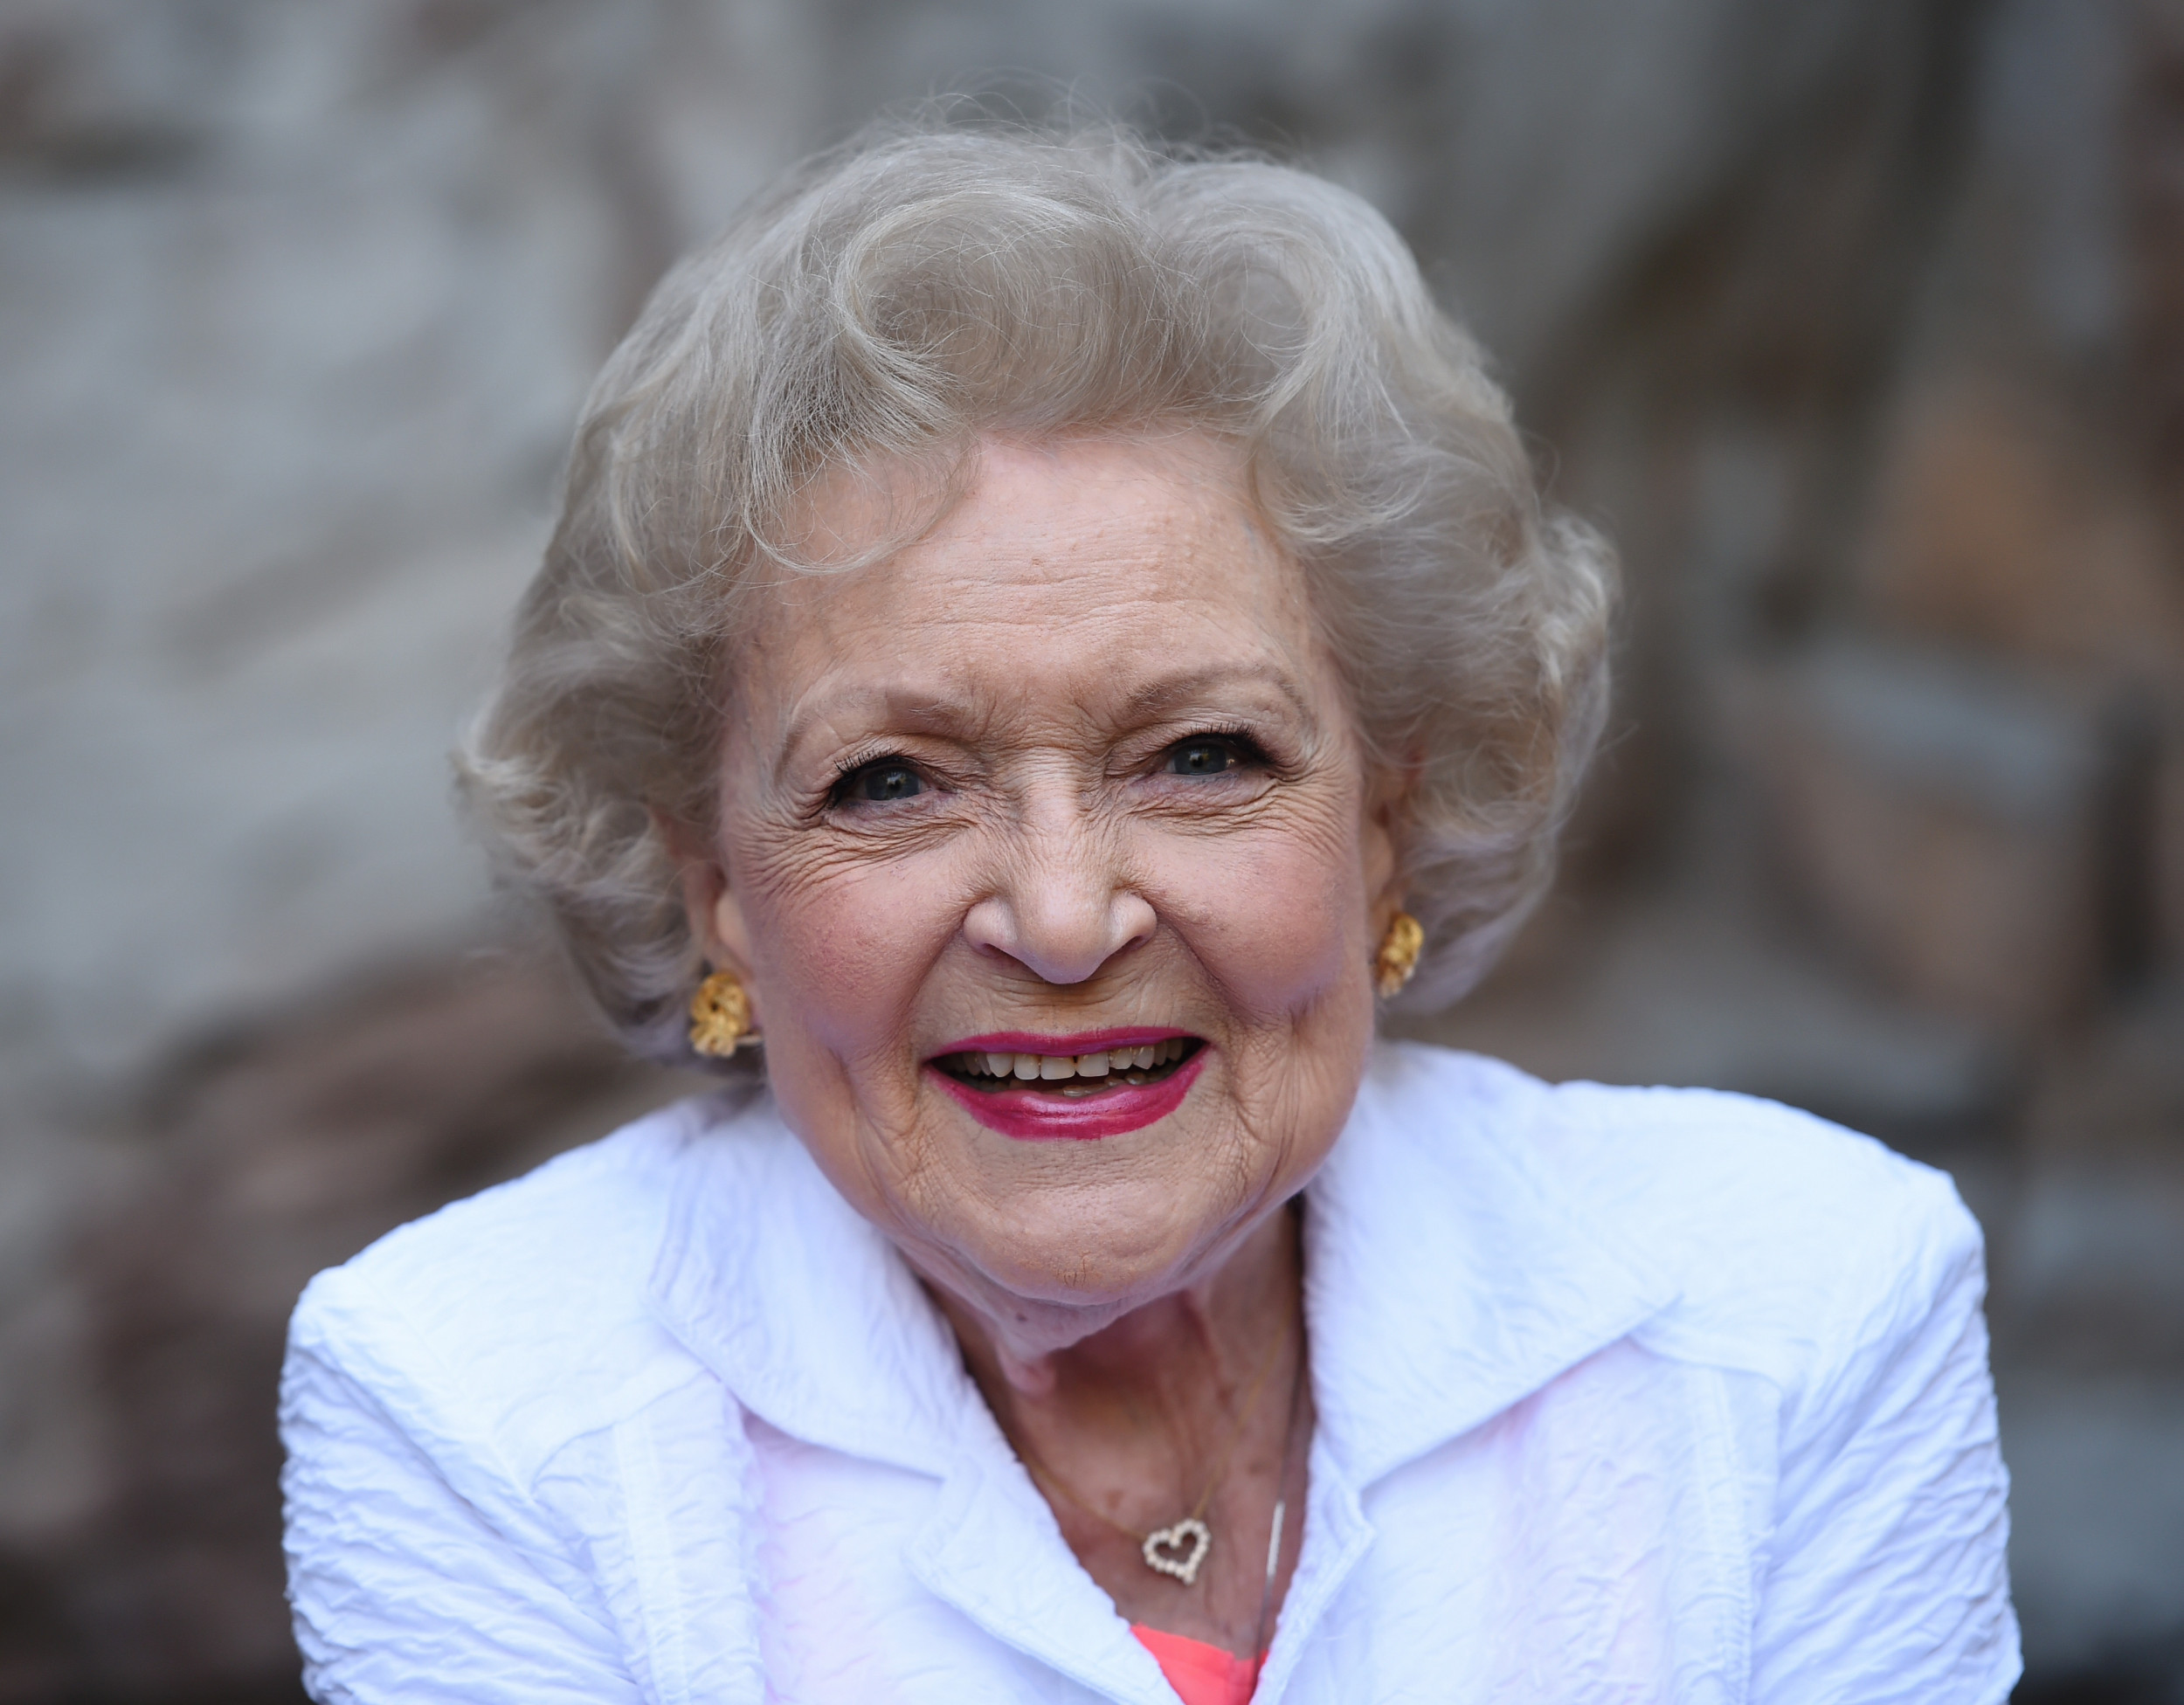 Betty White Fans Flood Twitter as Actress Turns 99, Says Will Be 'Up As Late As I Want'